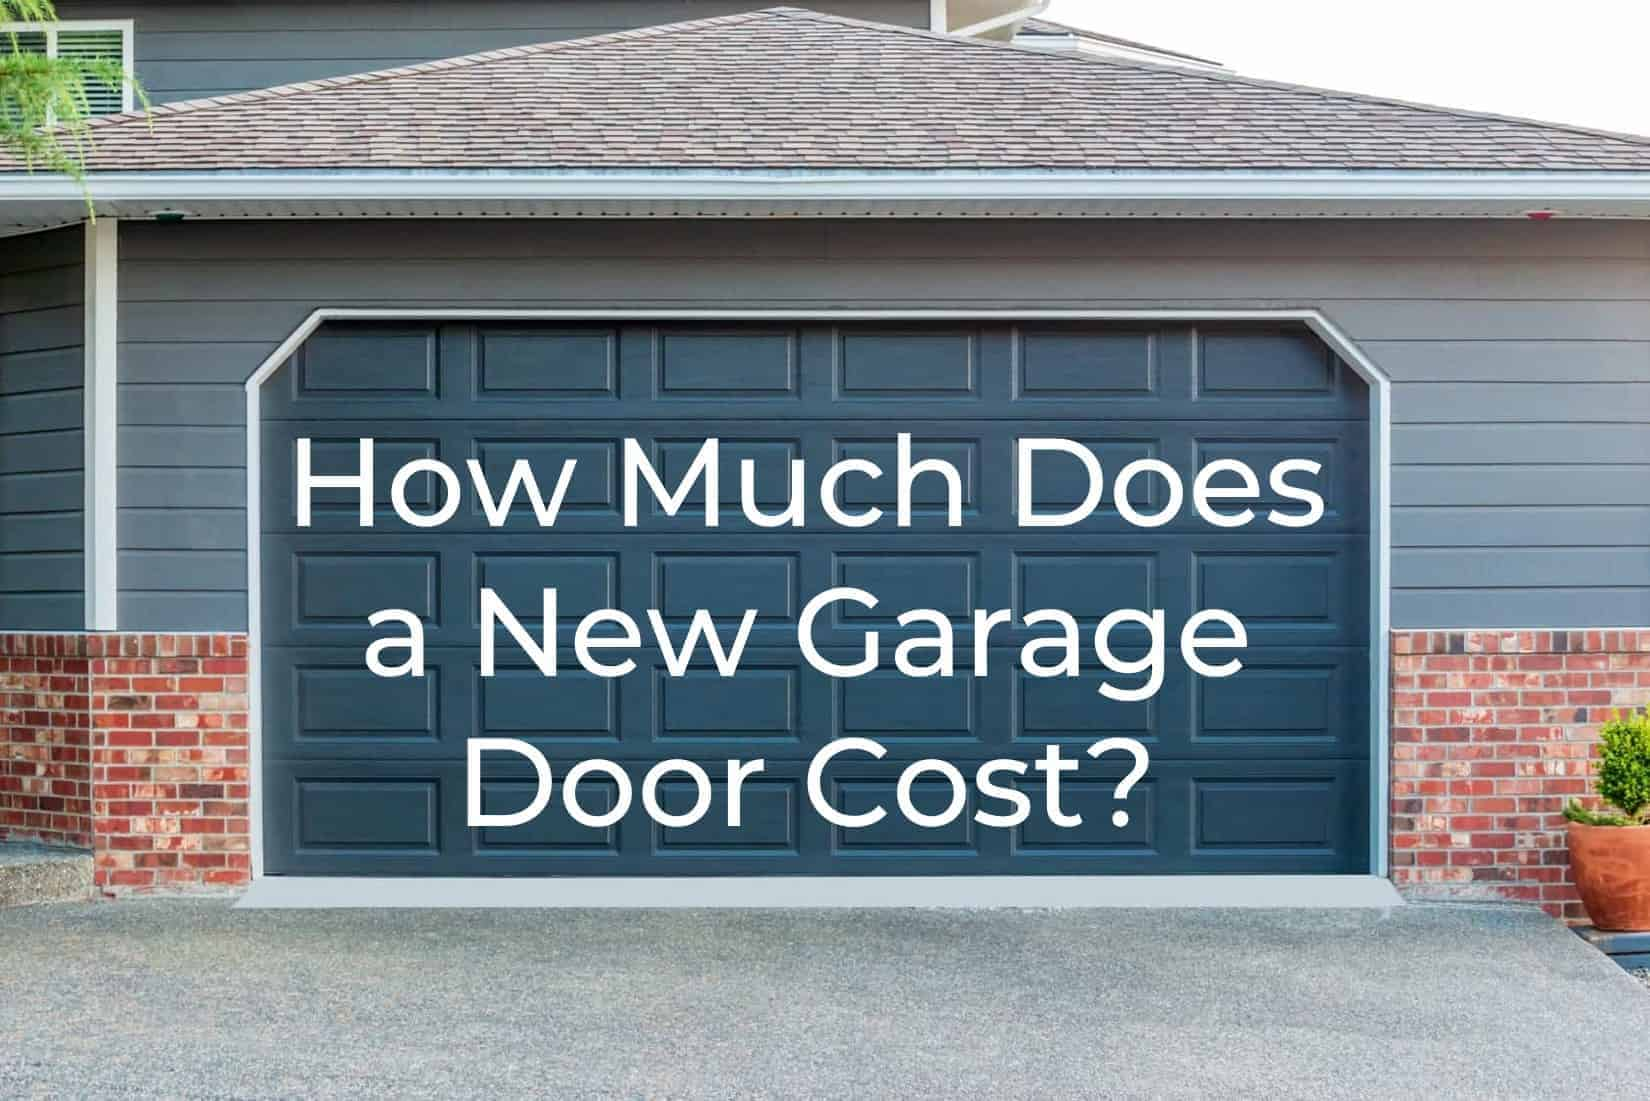 How Much Does It Cost to Install a New Garage Door in Arizona?